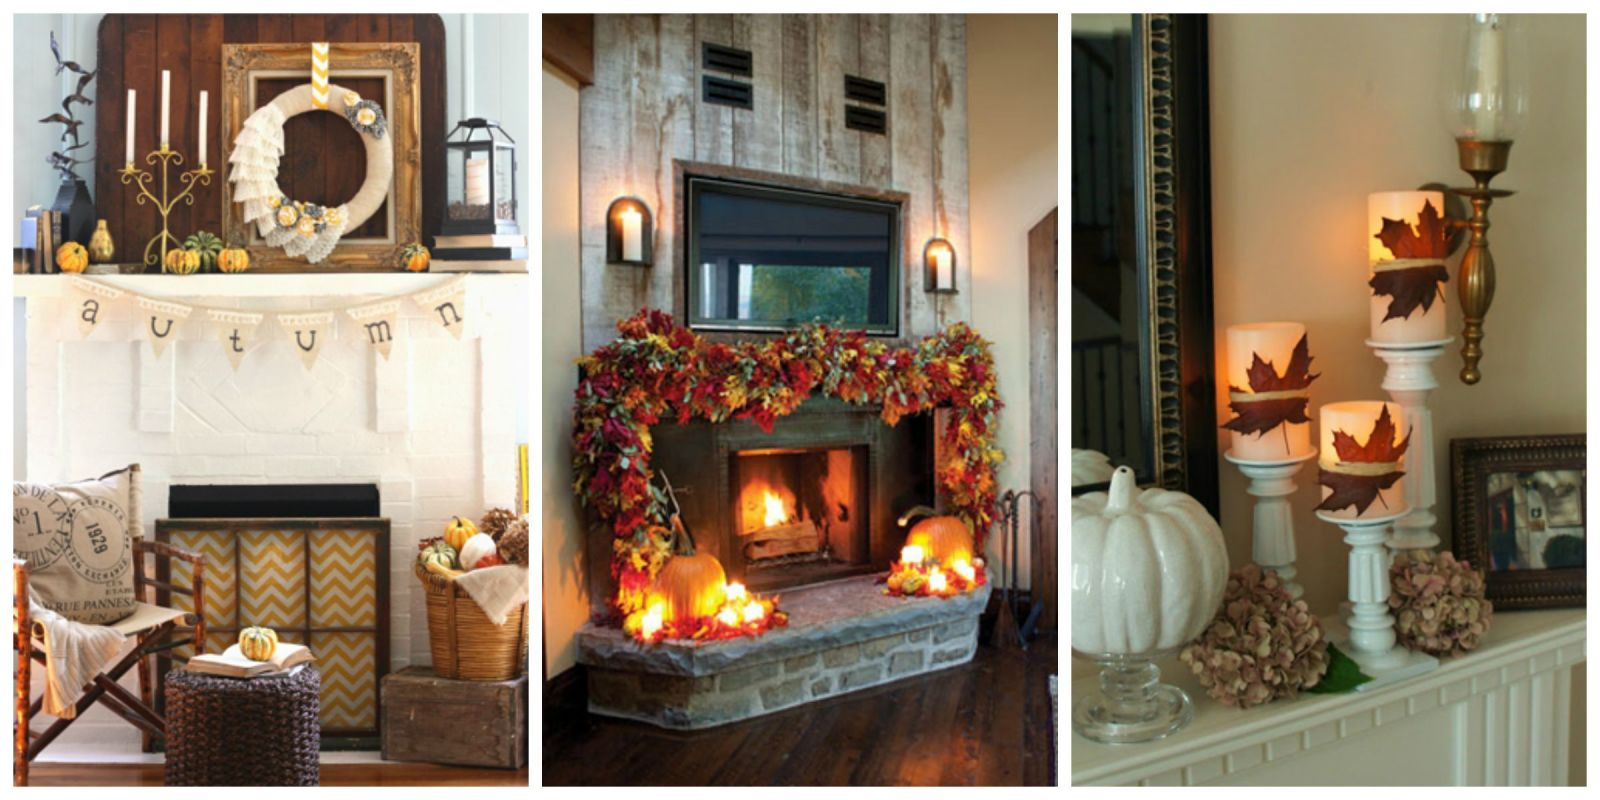 35 fall mantel decorating ideas halloween mantel decorations - Decorate Halloween